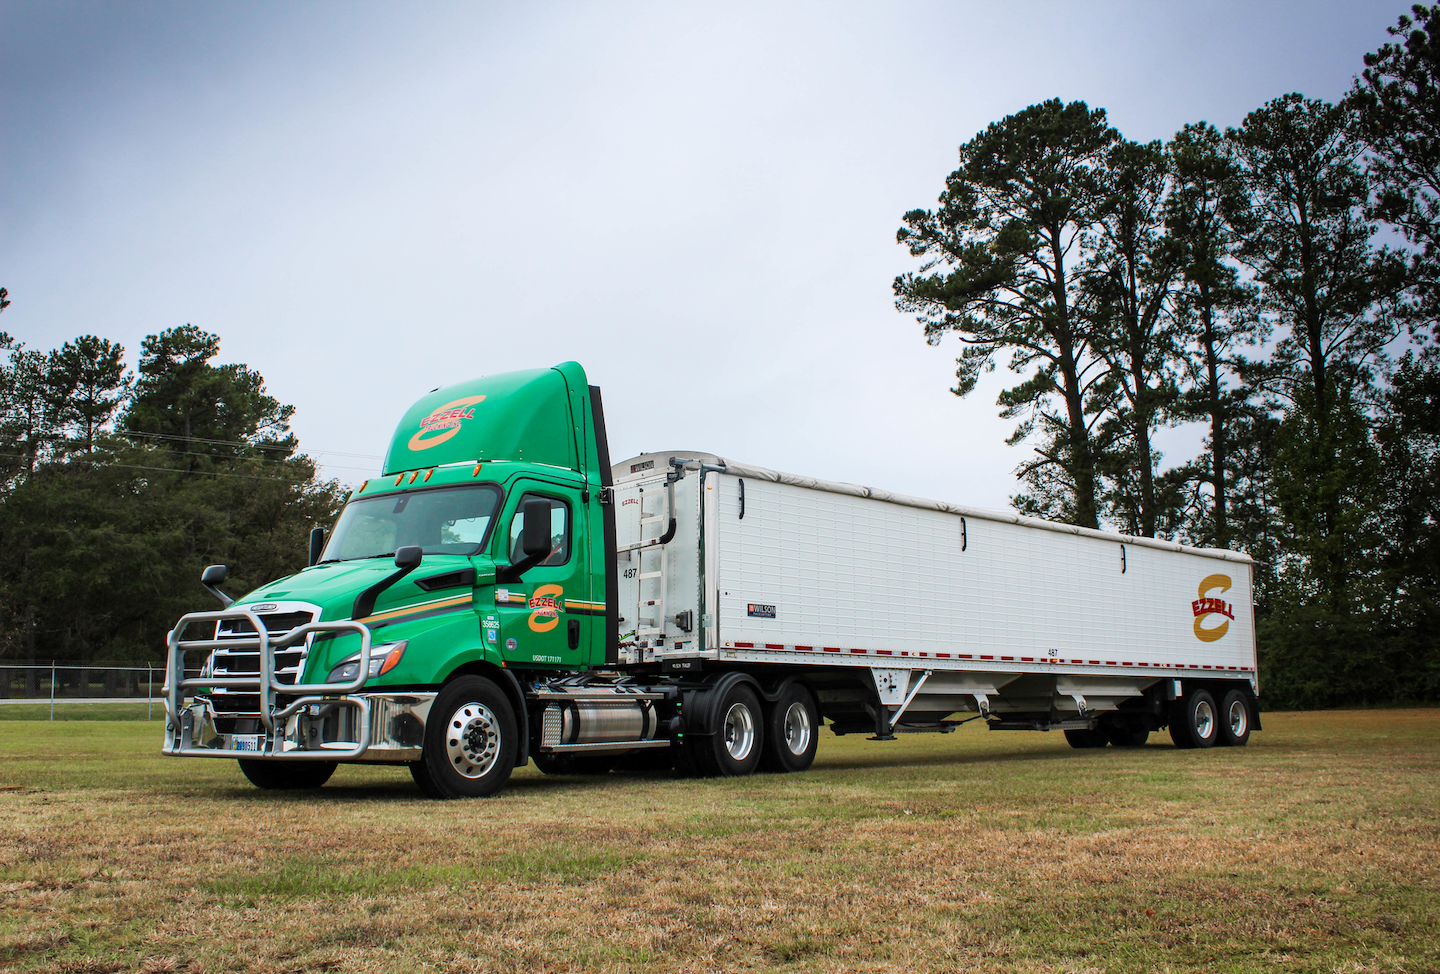 Ezzell Trucking runs a fleet of daycabs and pays drivers by the ton.